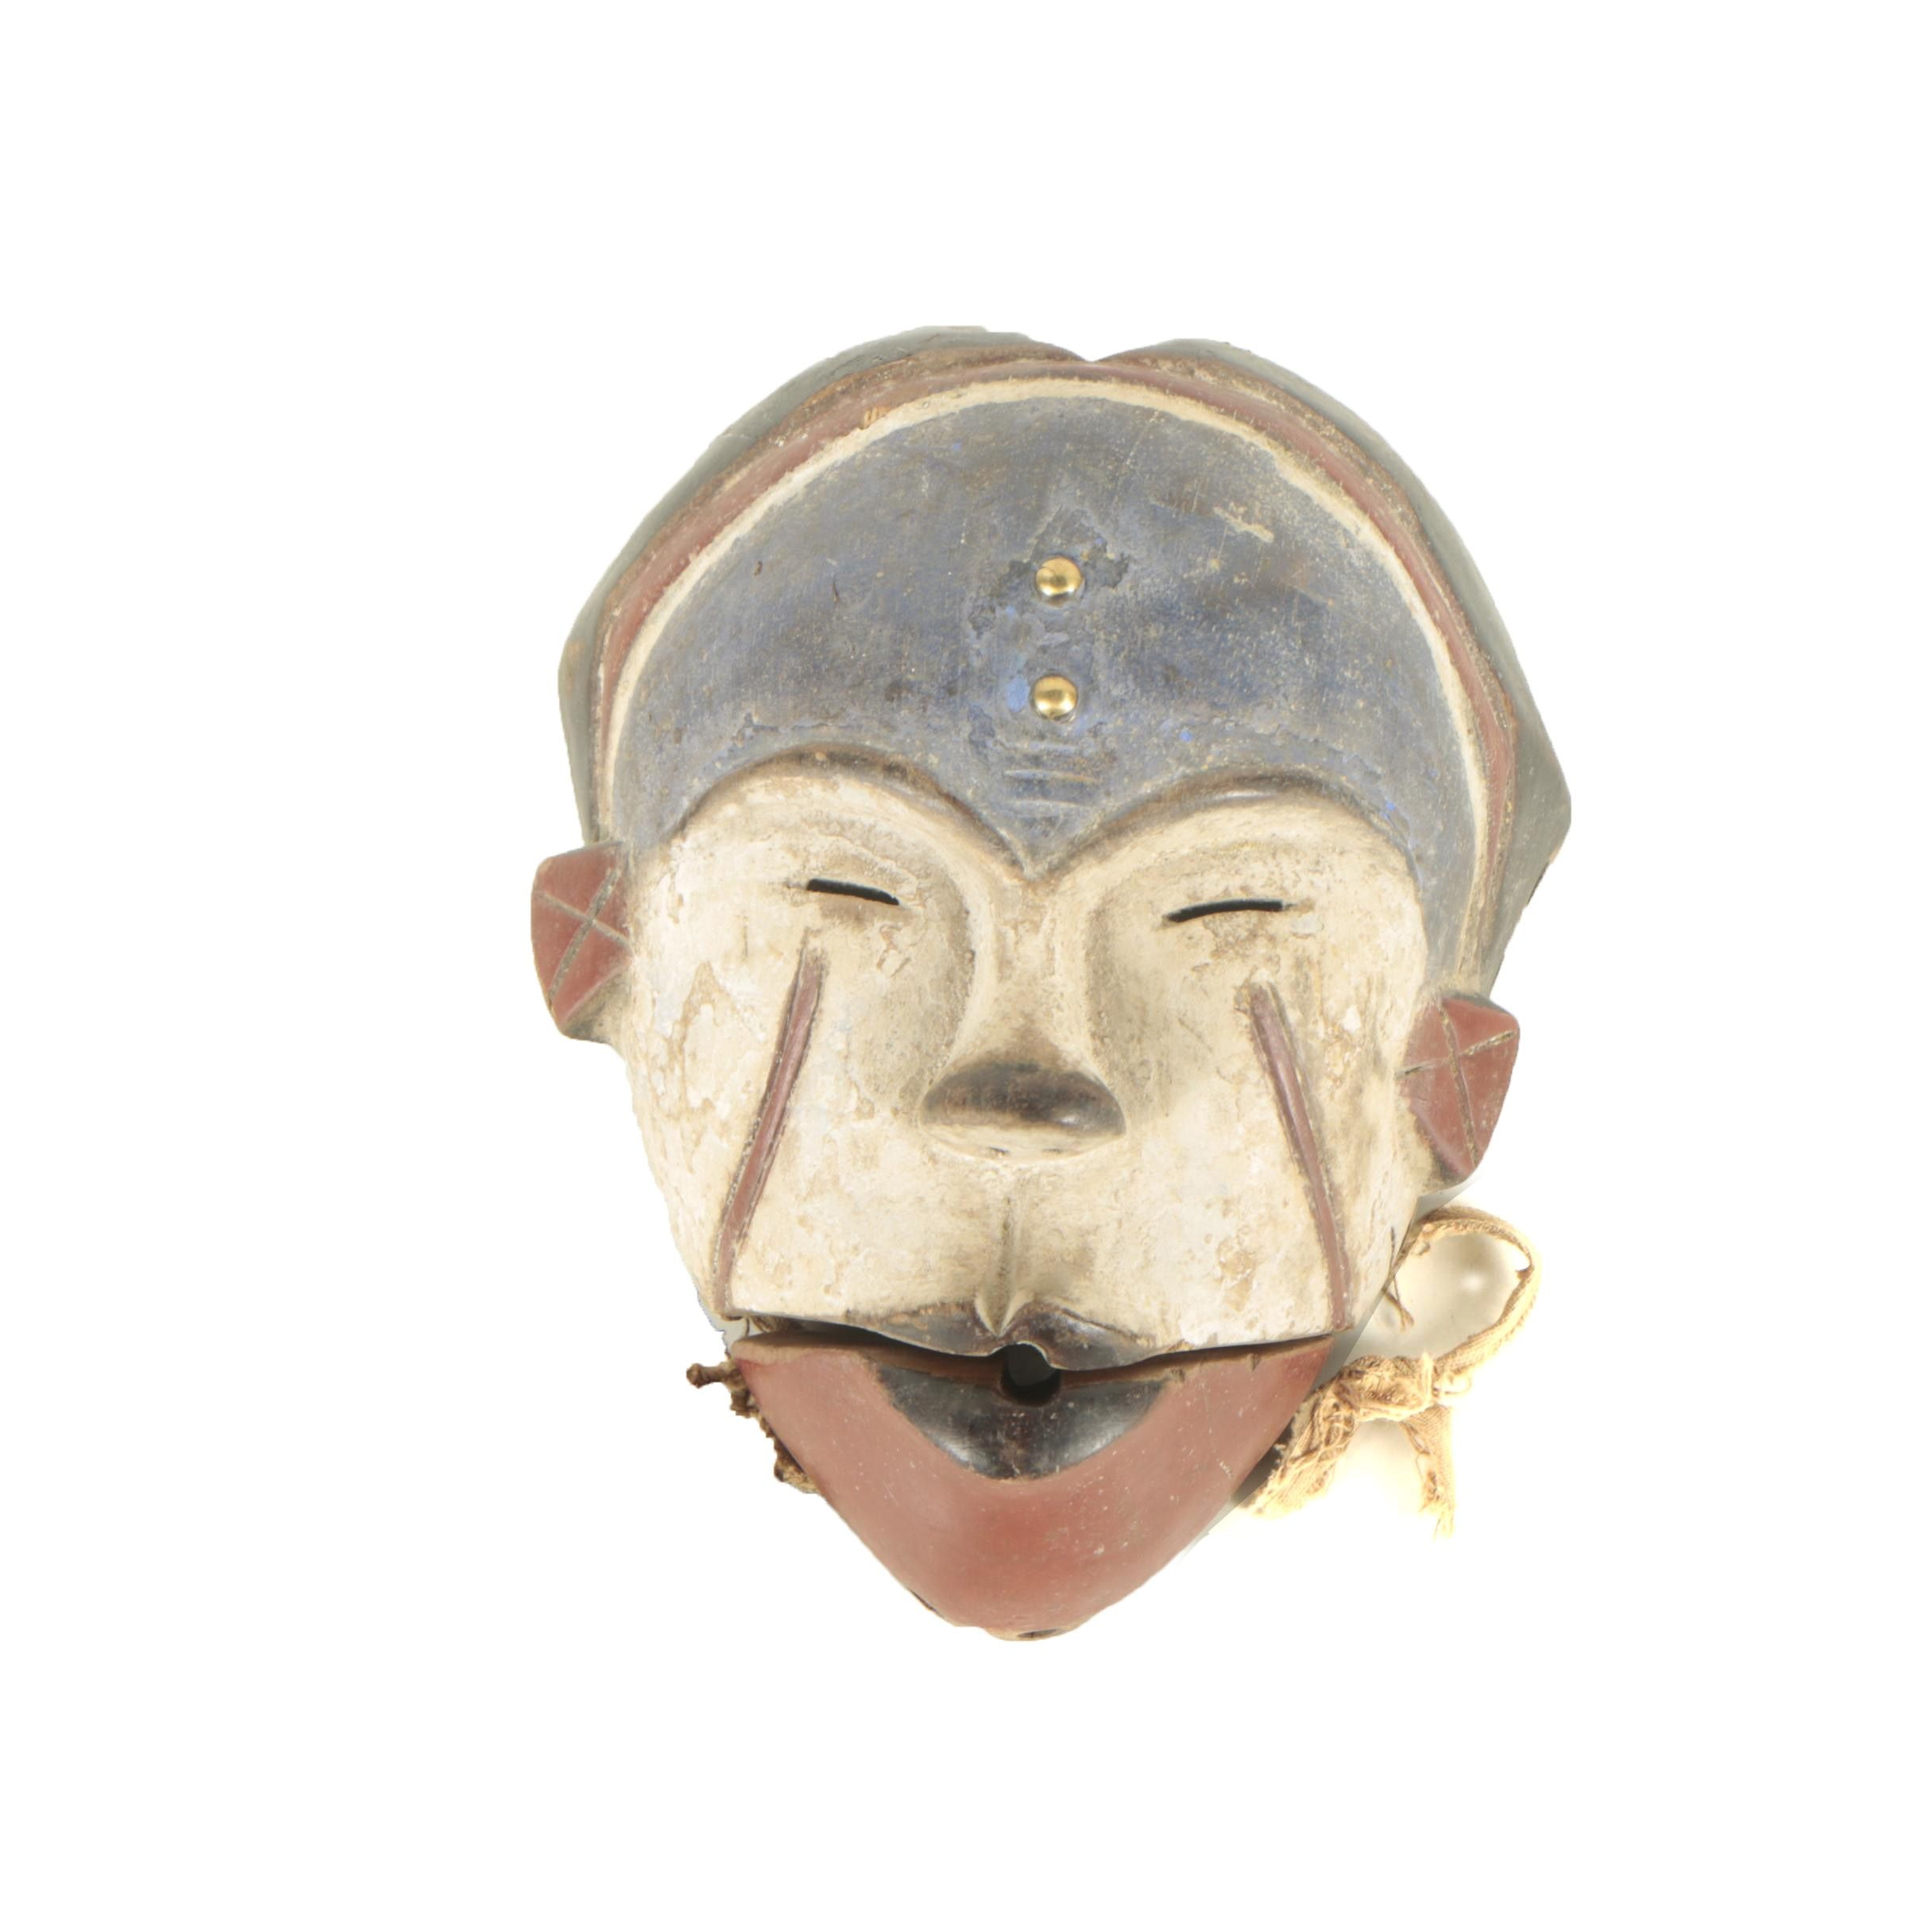 20th Century Hand-Carved Central African Wooden Mask